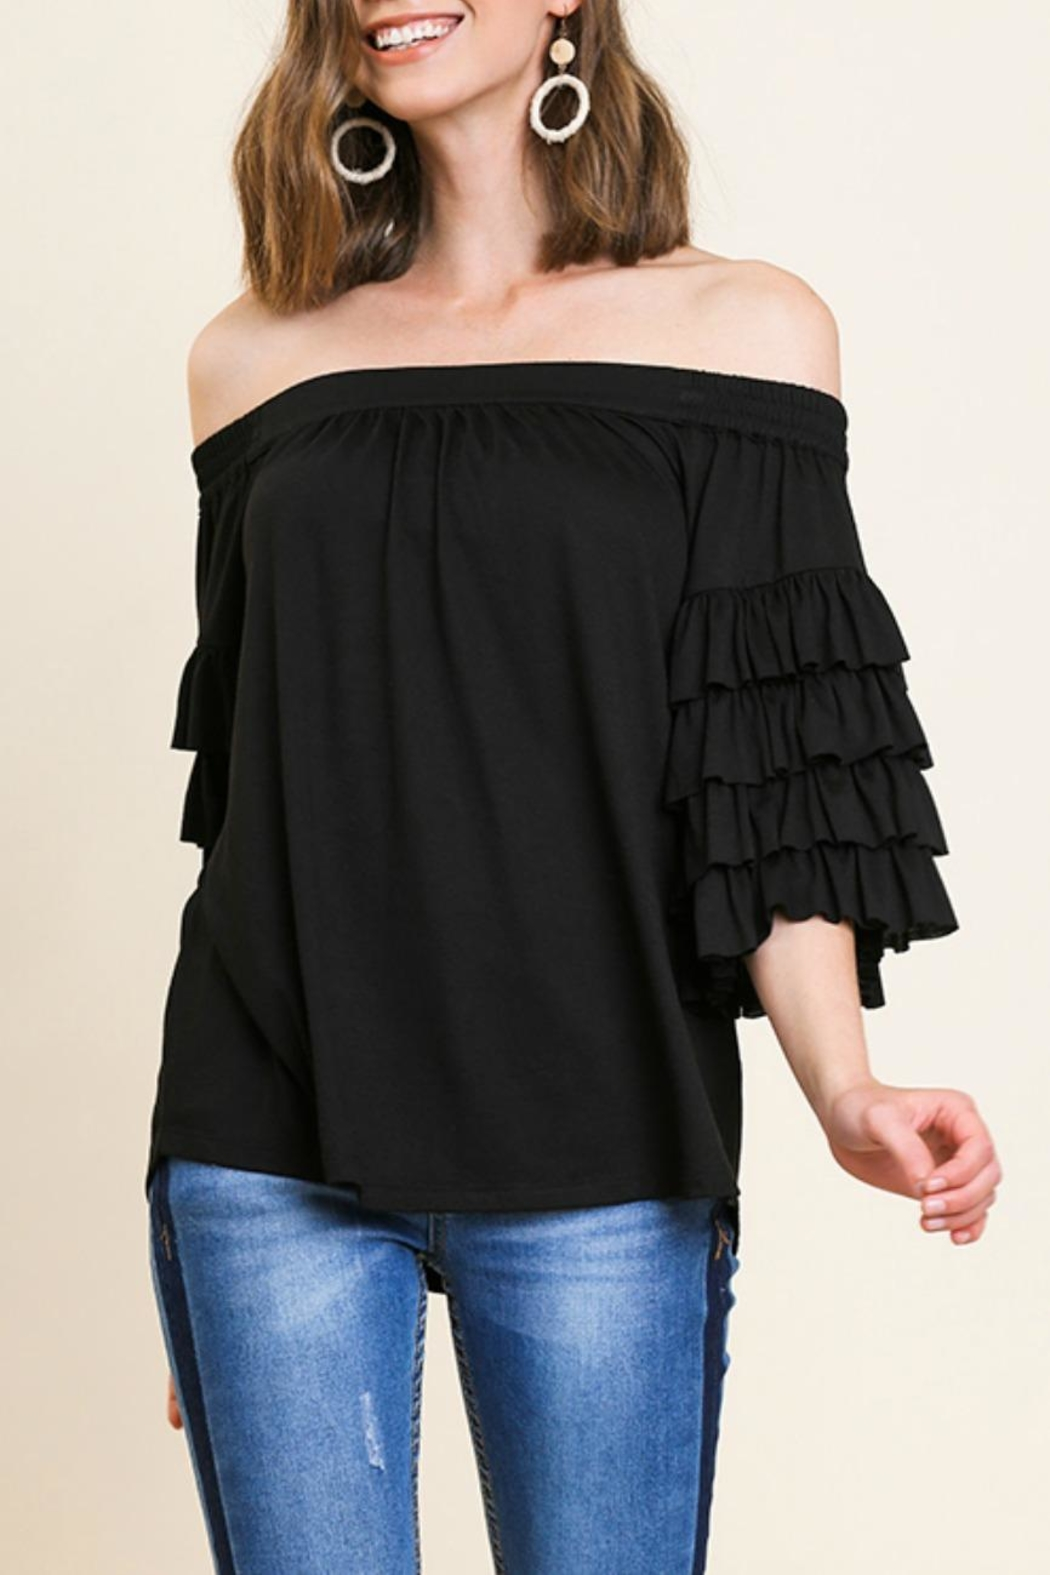 Umgee USA Ots Ruffle-Sleeve Top - Main Image